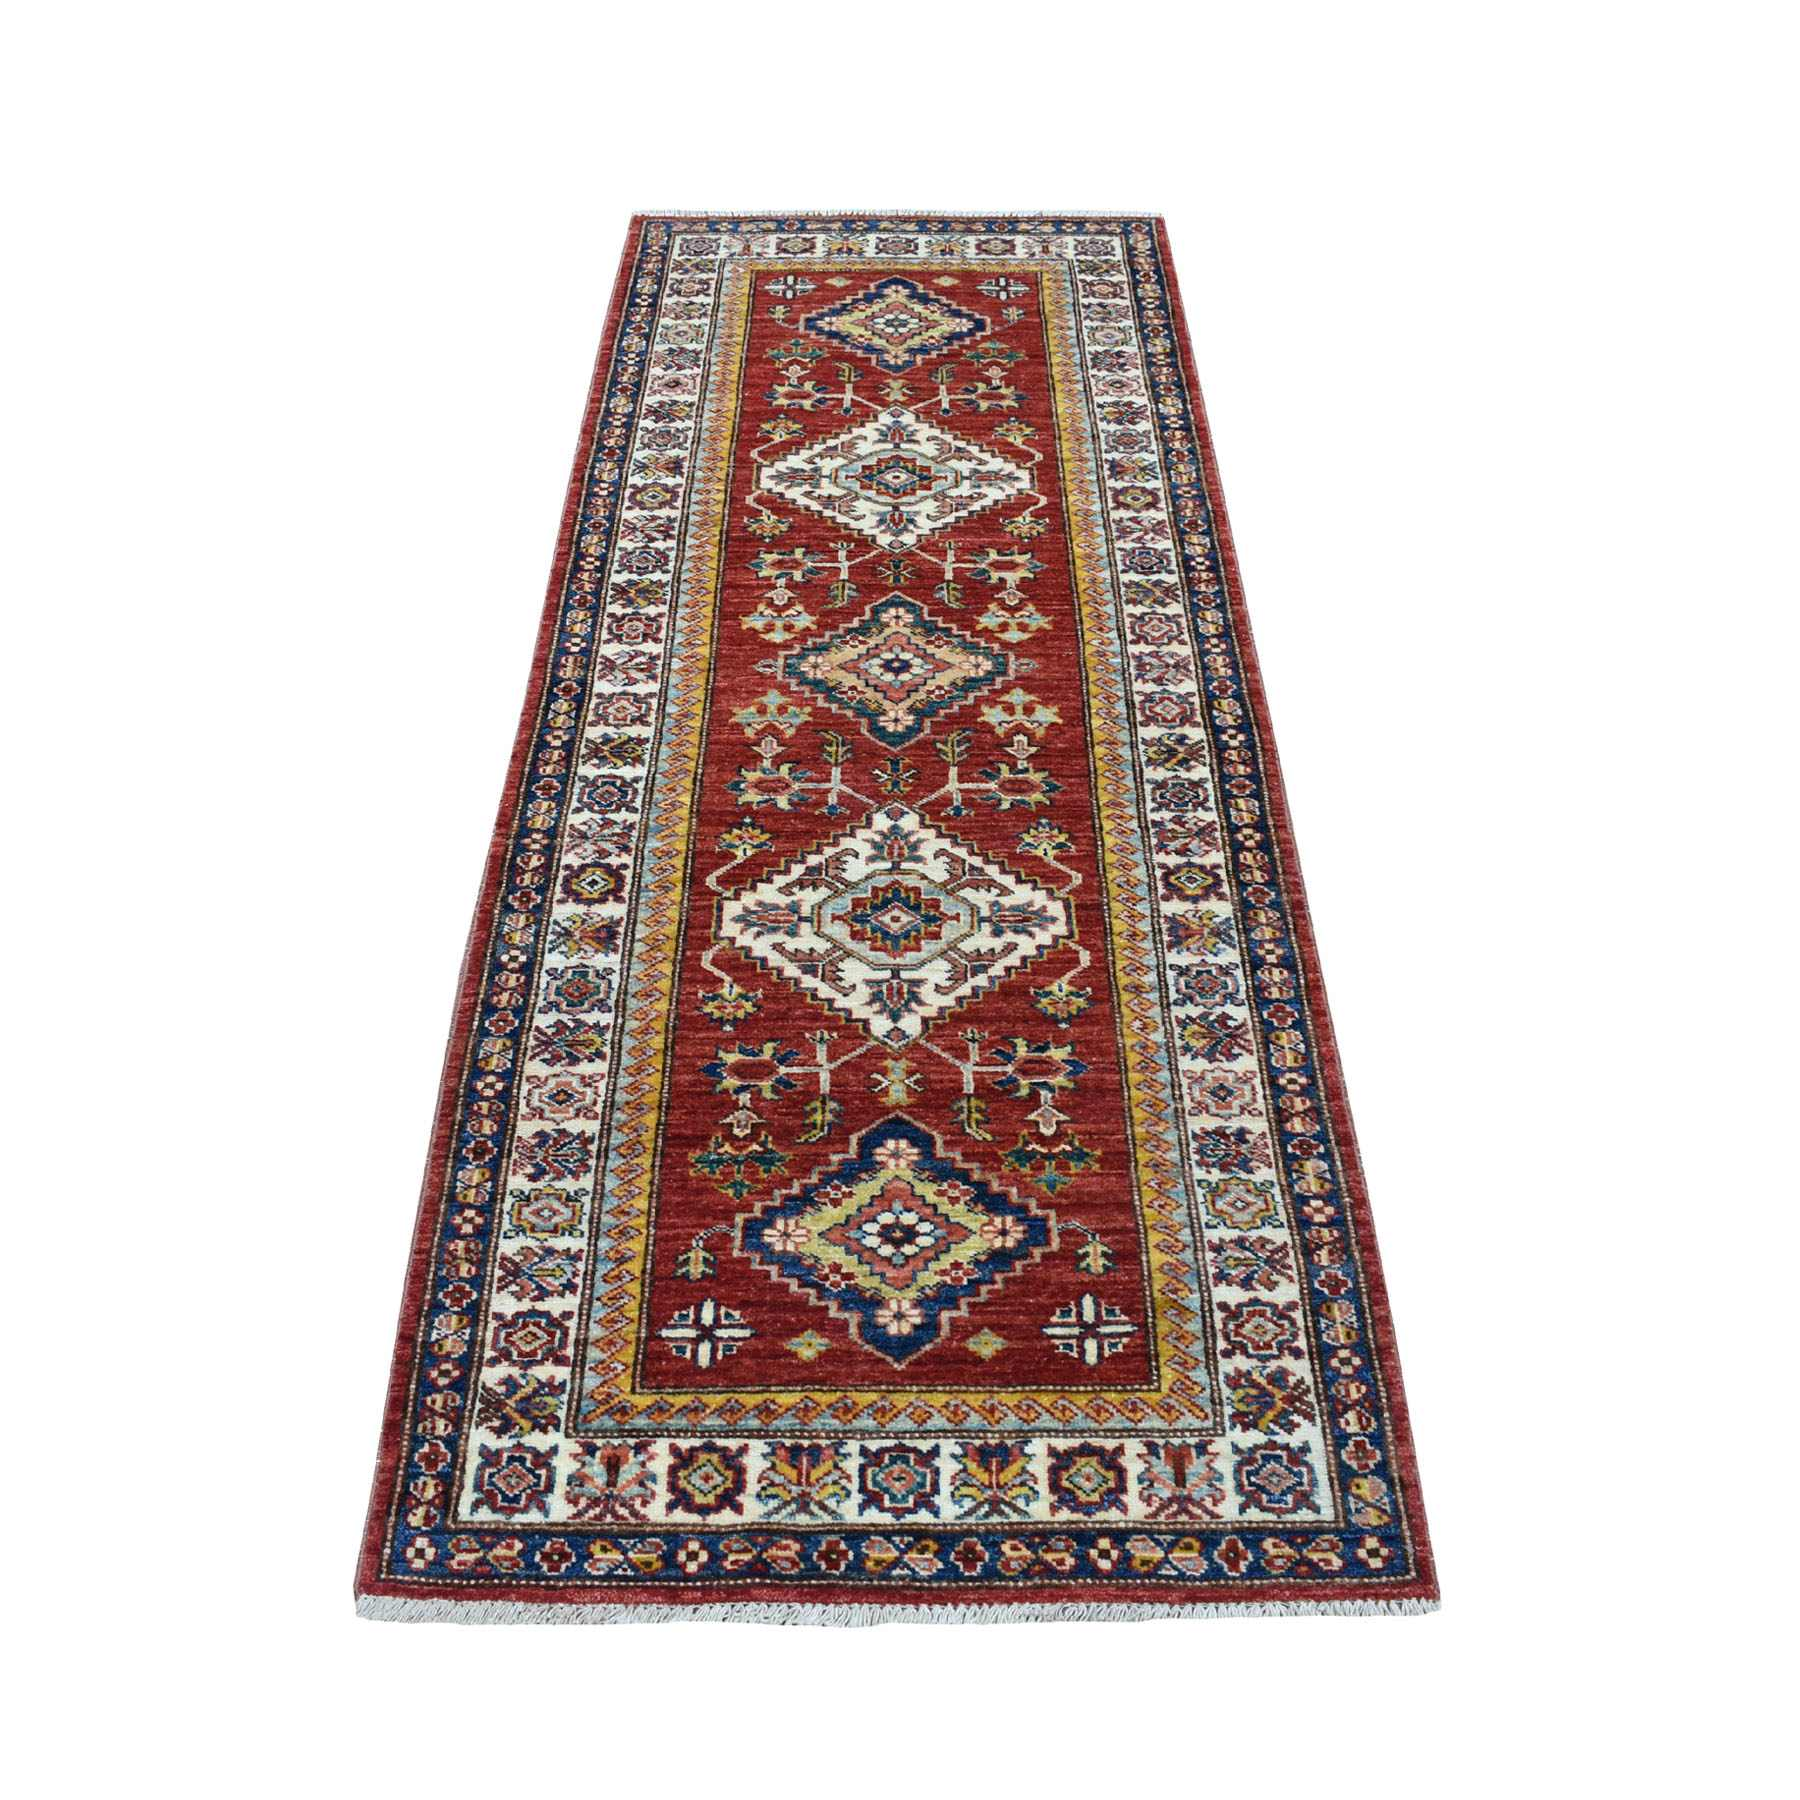 "2'9""x6'9"" Red Super Kazak Geometric Design Afghan Wool Hand Woven Runner Oriental Rug"